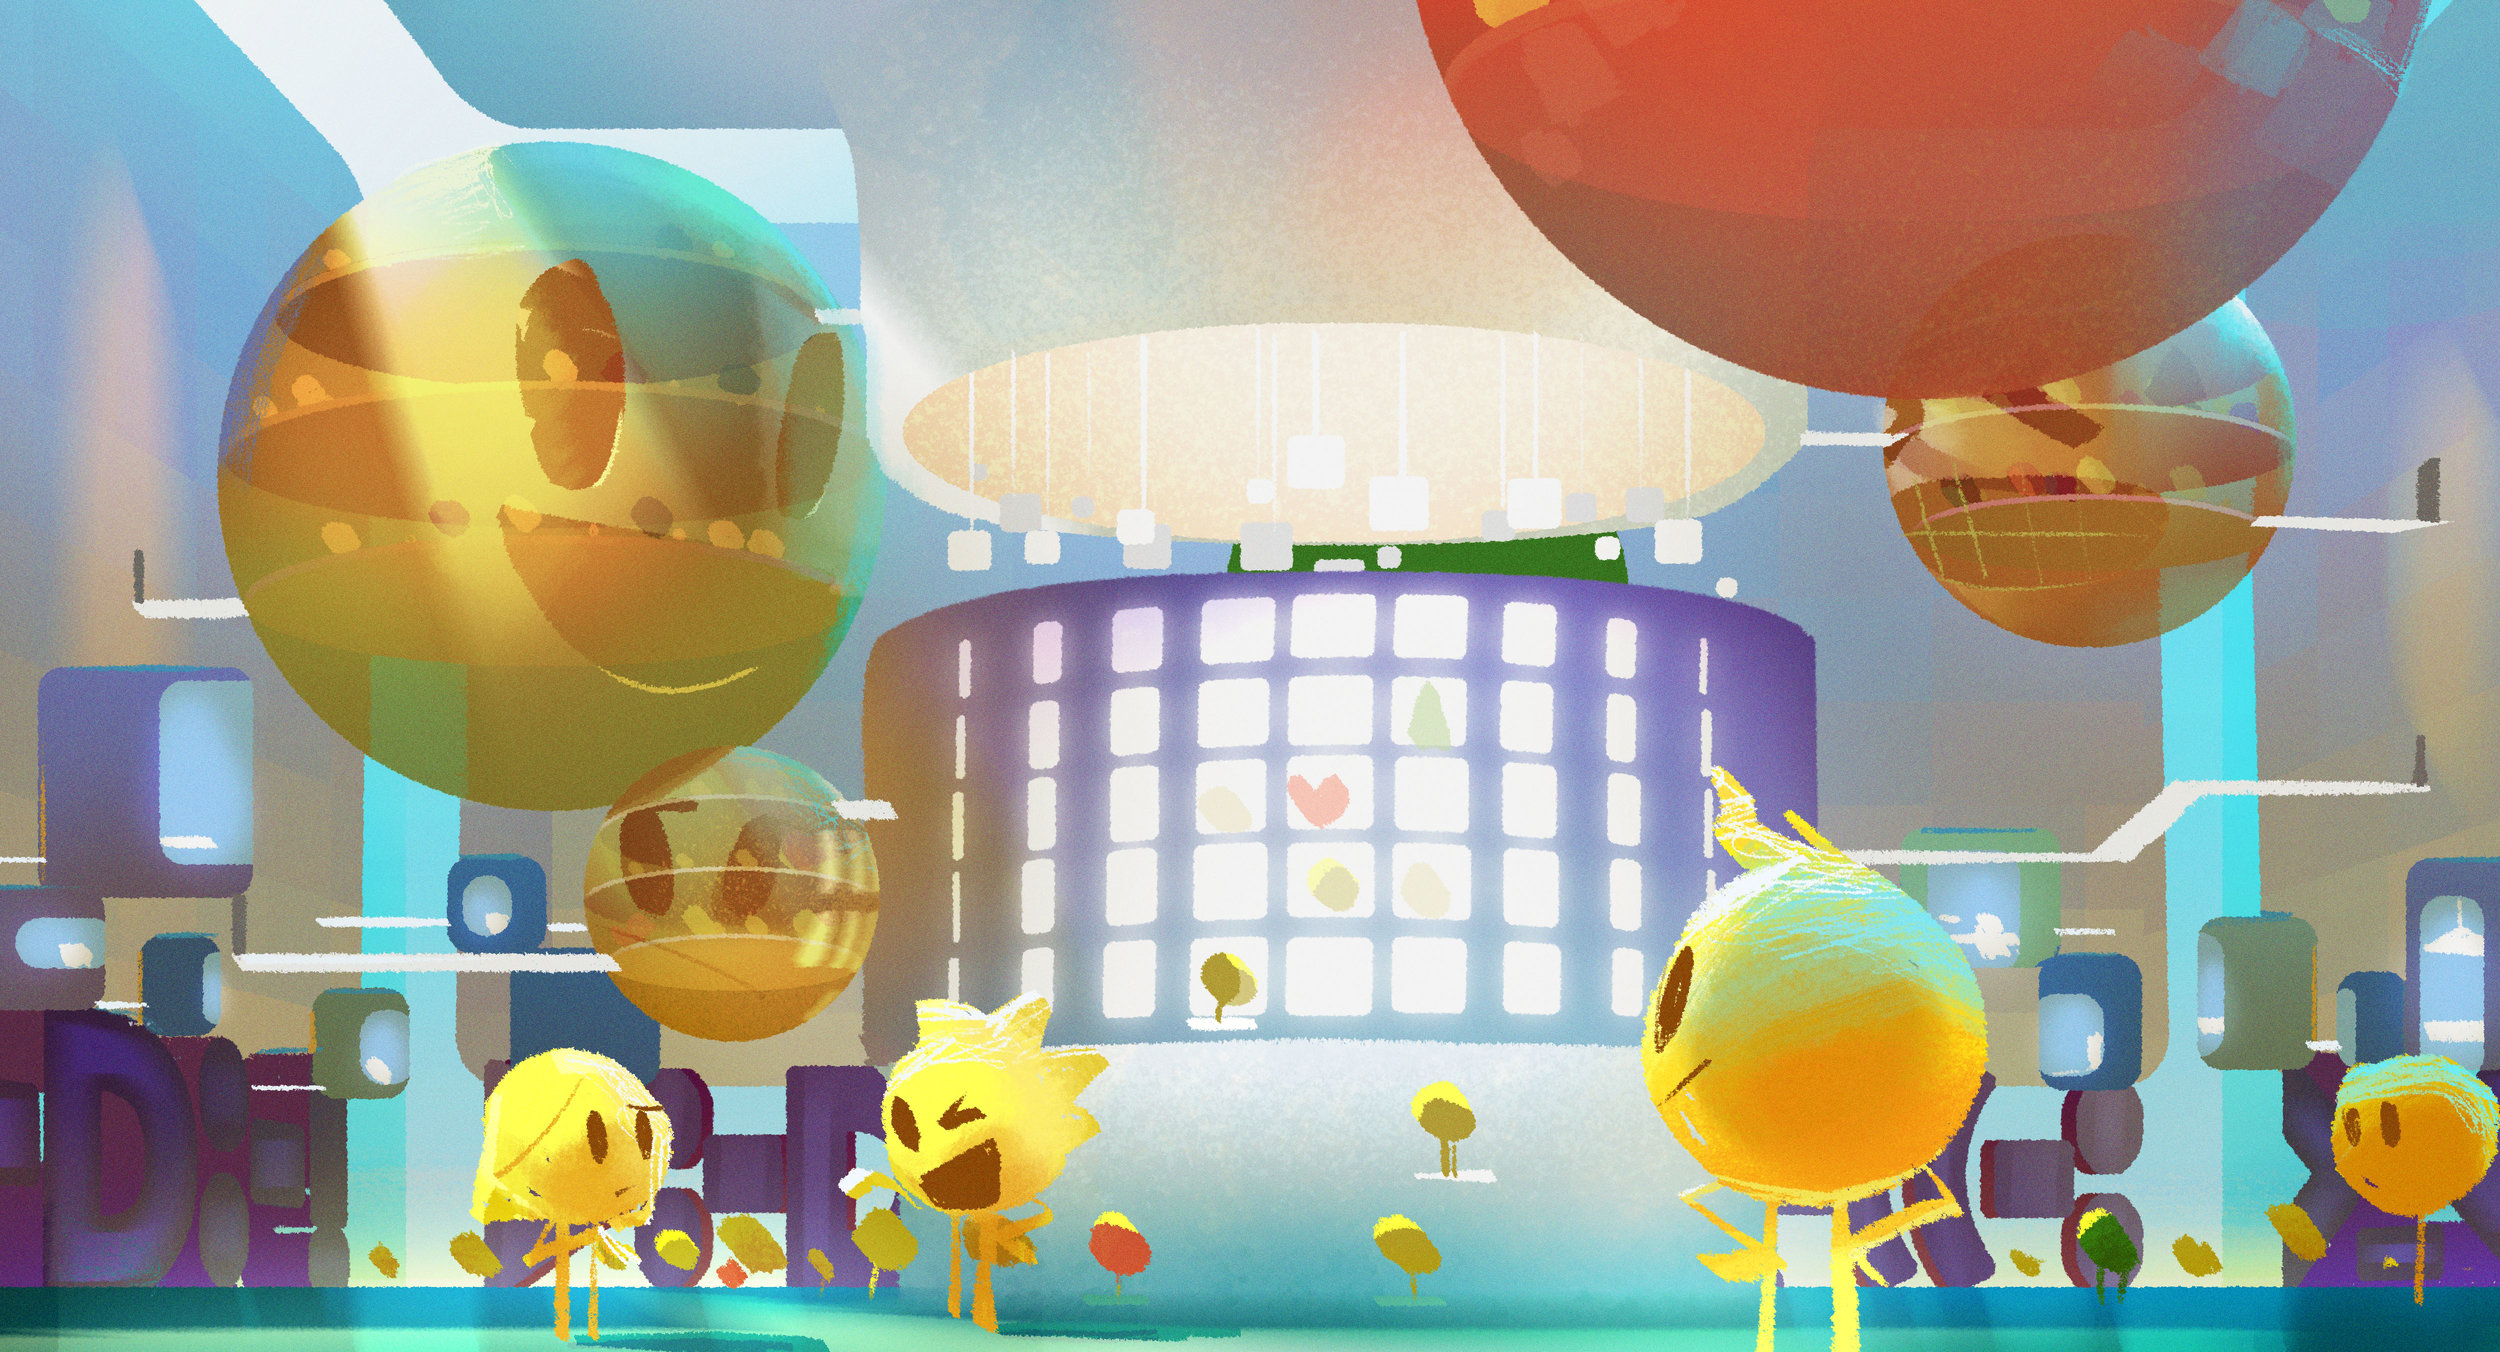 Concept art for the company amphitheater where the Emojis work.